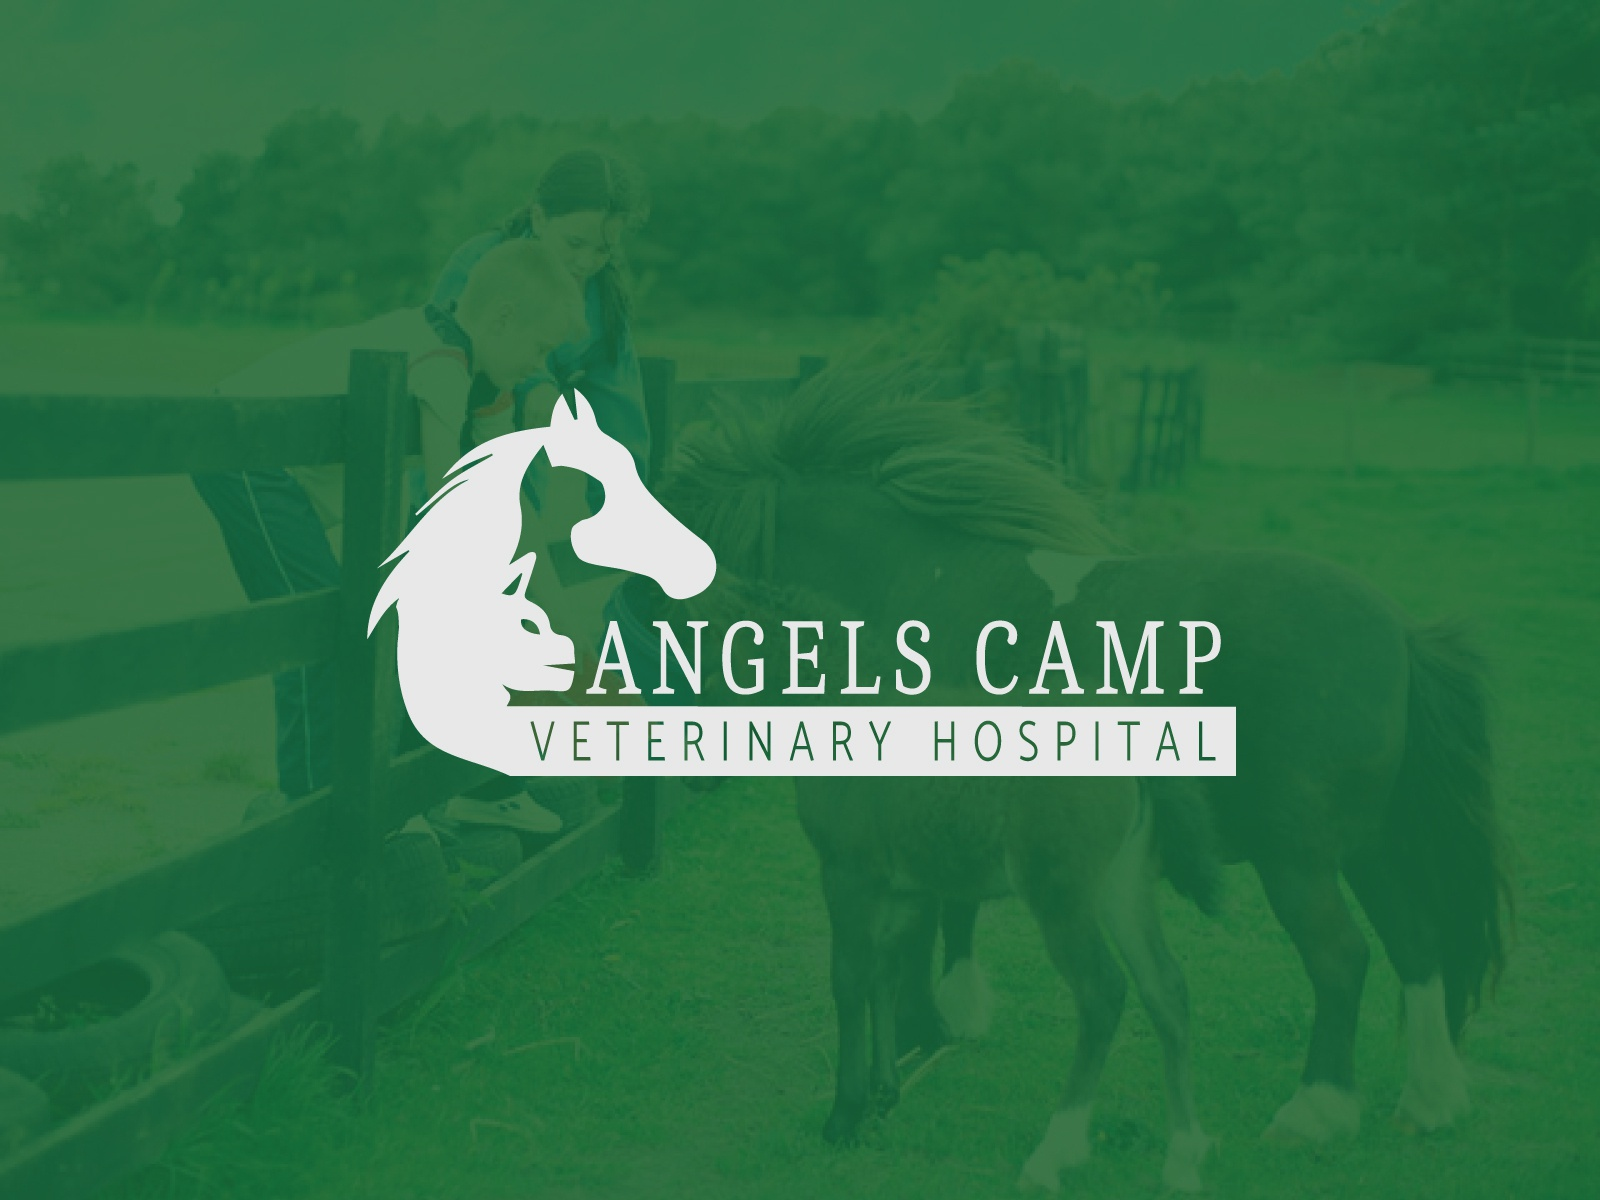 Angels Camp Veterinary Hospital by Saber Ahmed on Dribbble